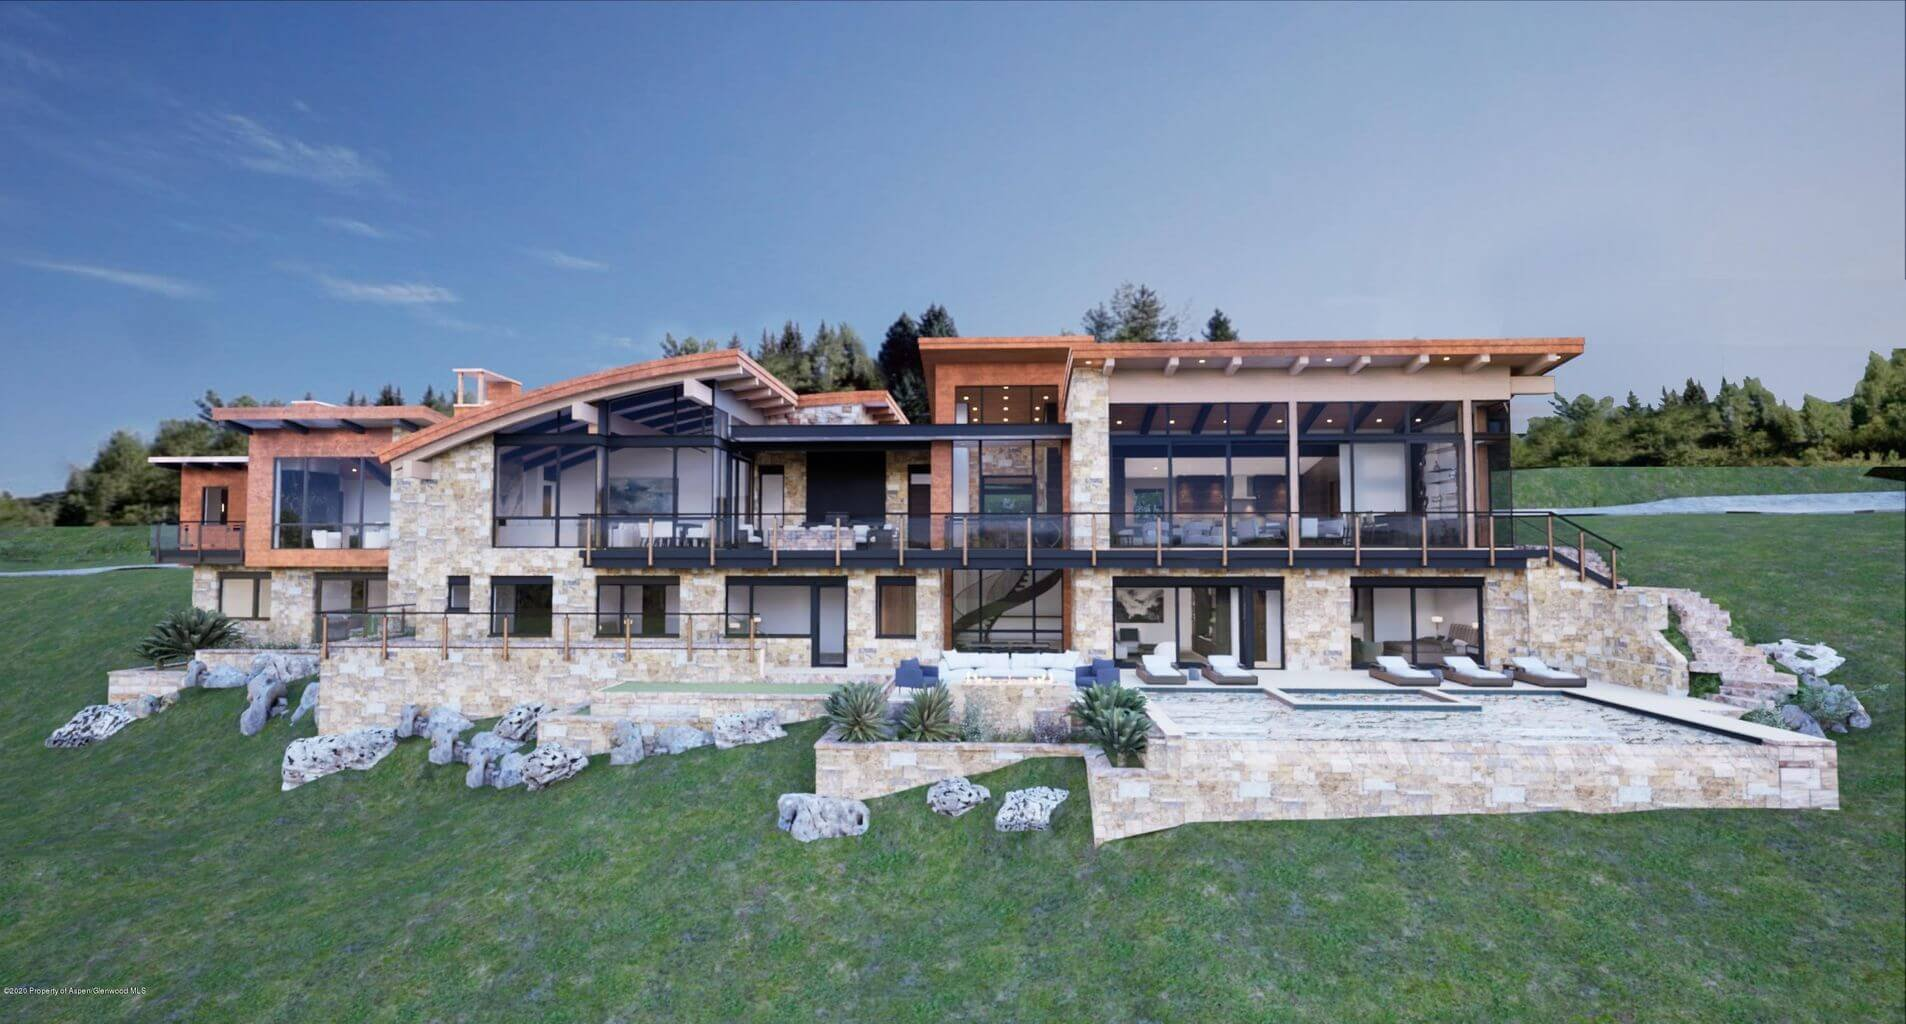 70 Pitkin Way, off Willoughy Way on Red Mountain, Sells Pre-completion Summer 2021 at $24.33M/$2,889 SF Image